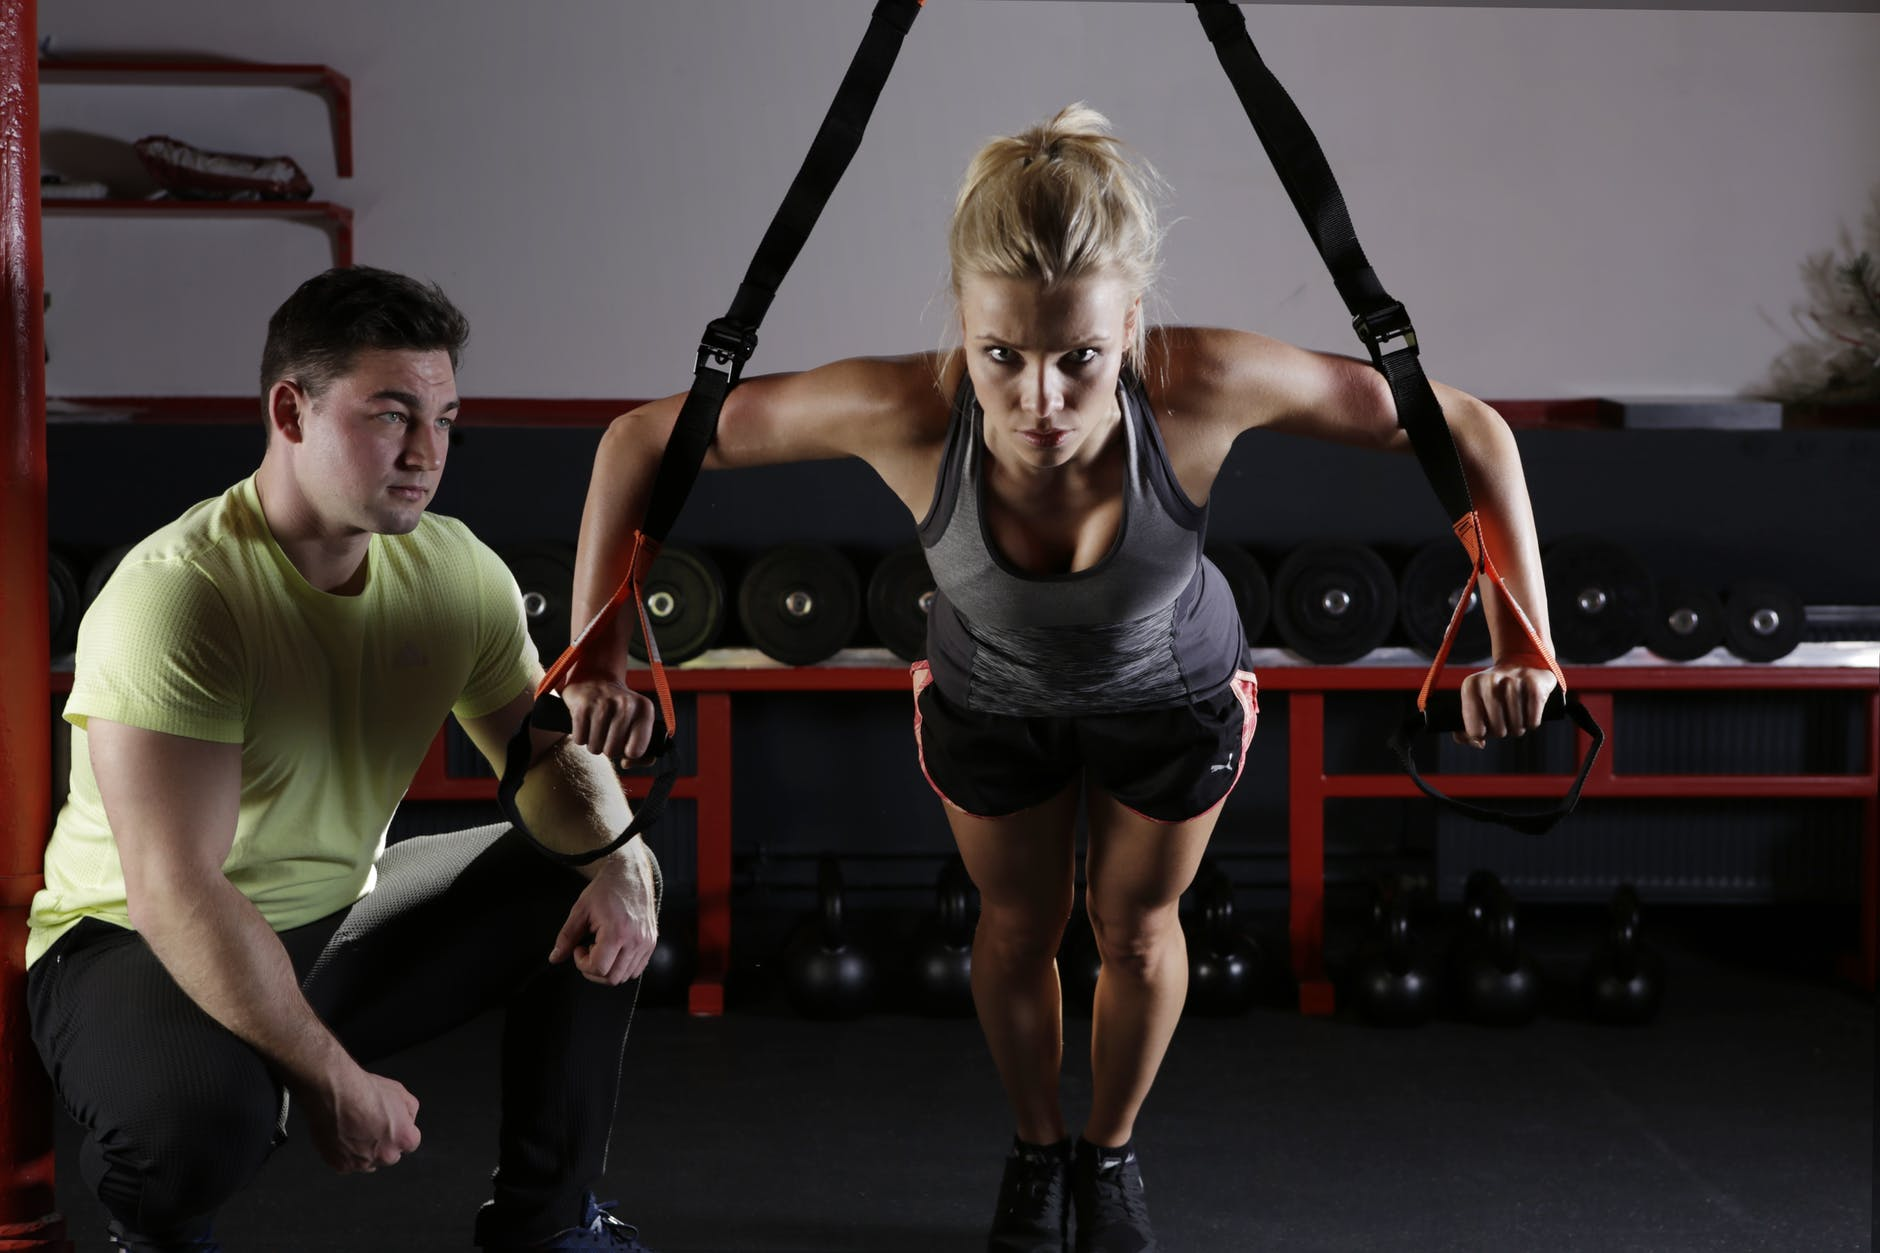 promote your fitness business